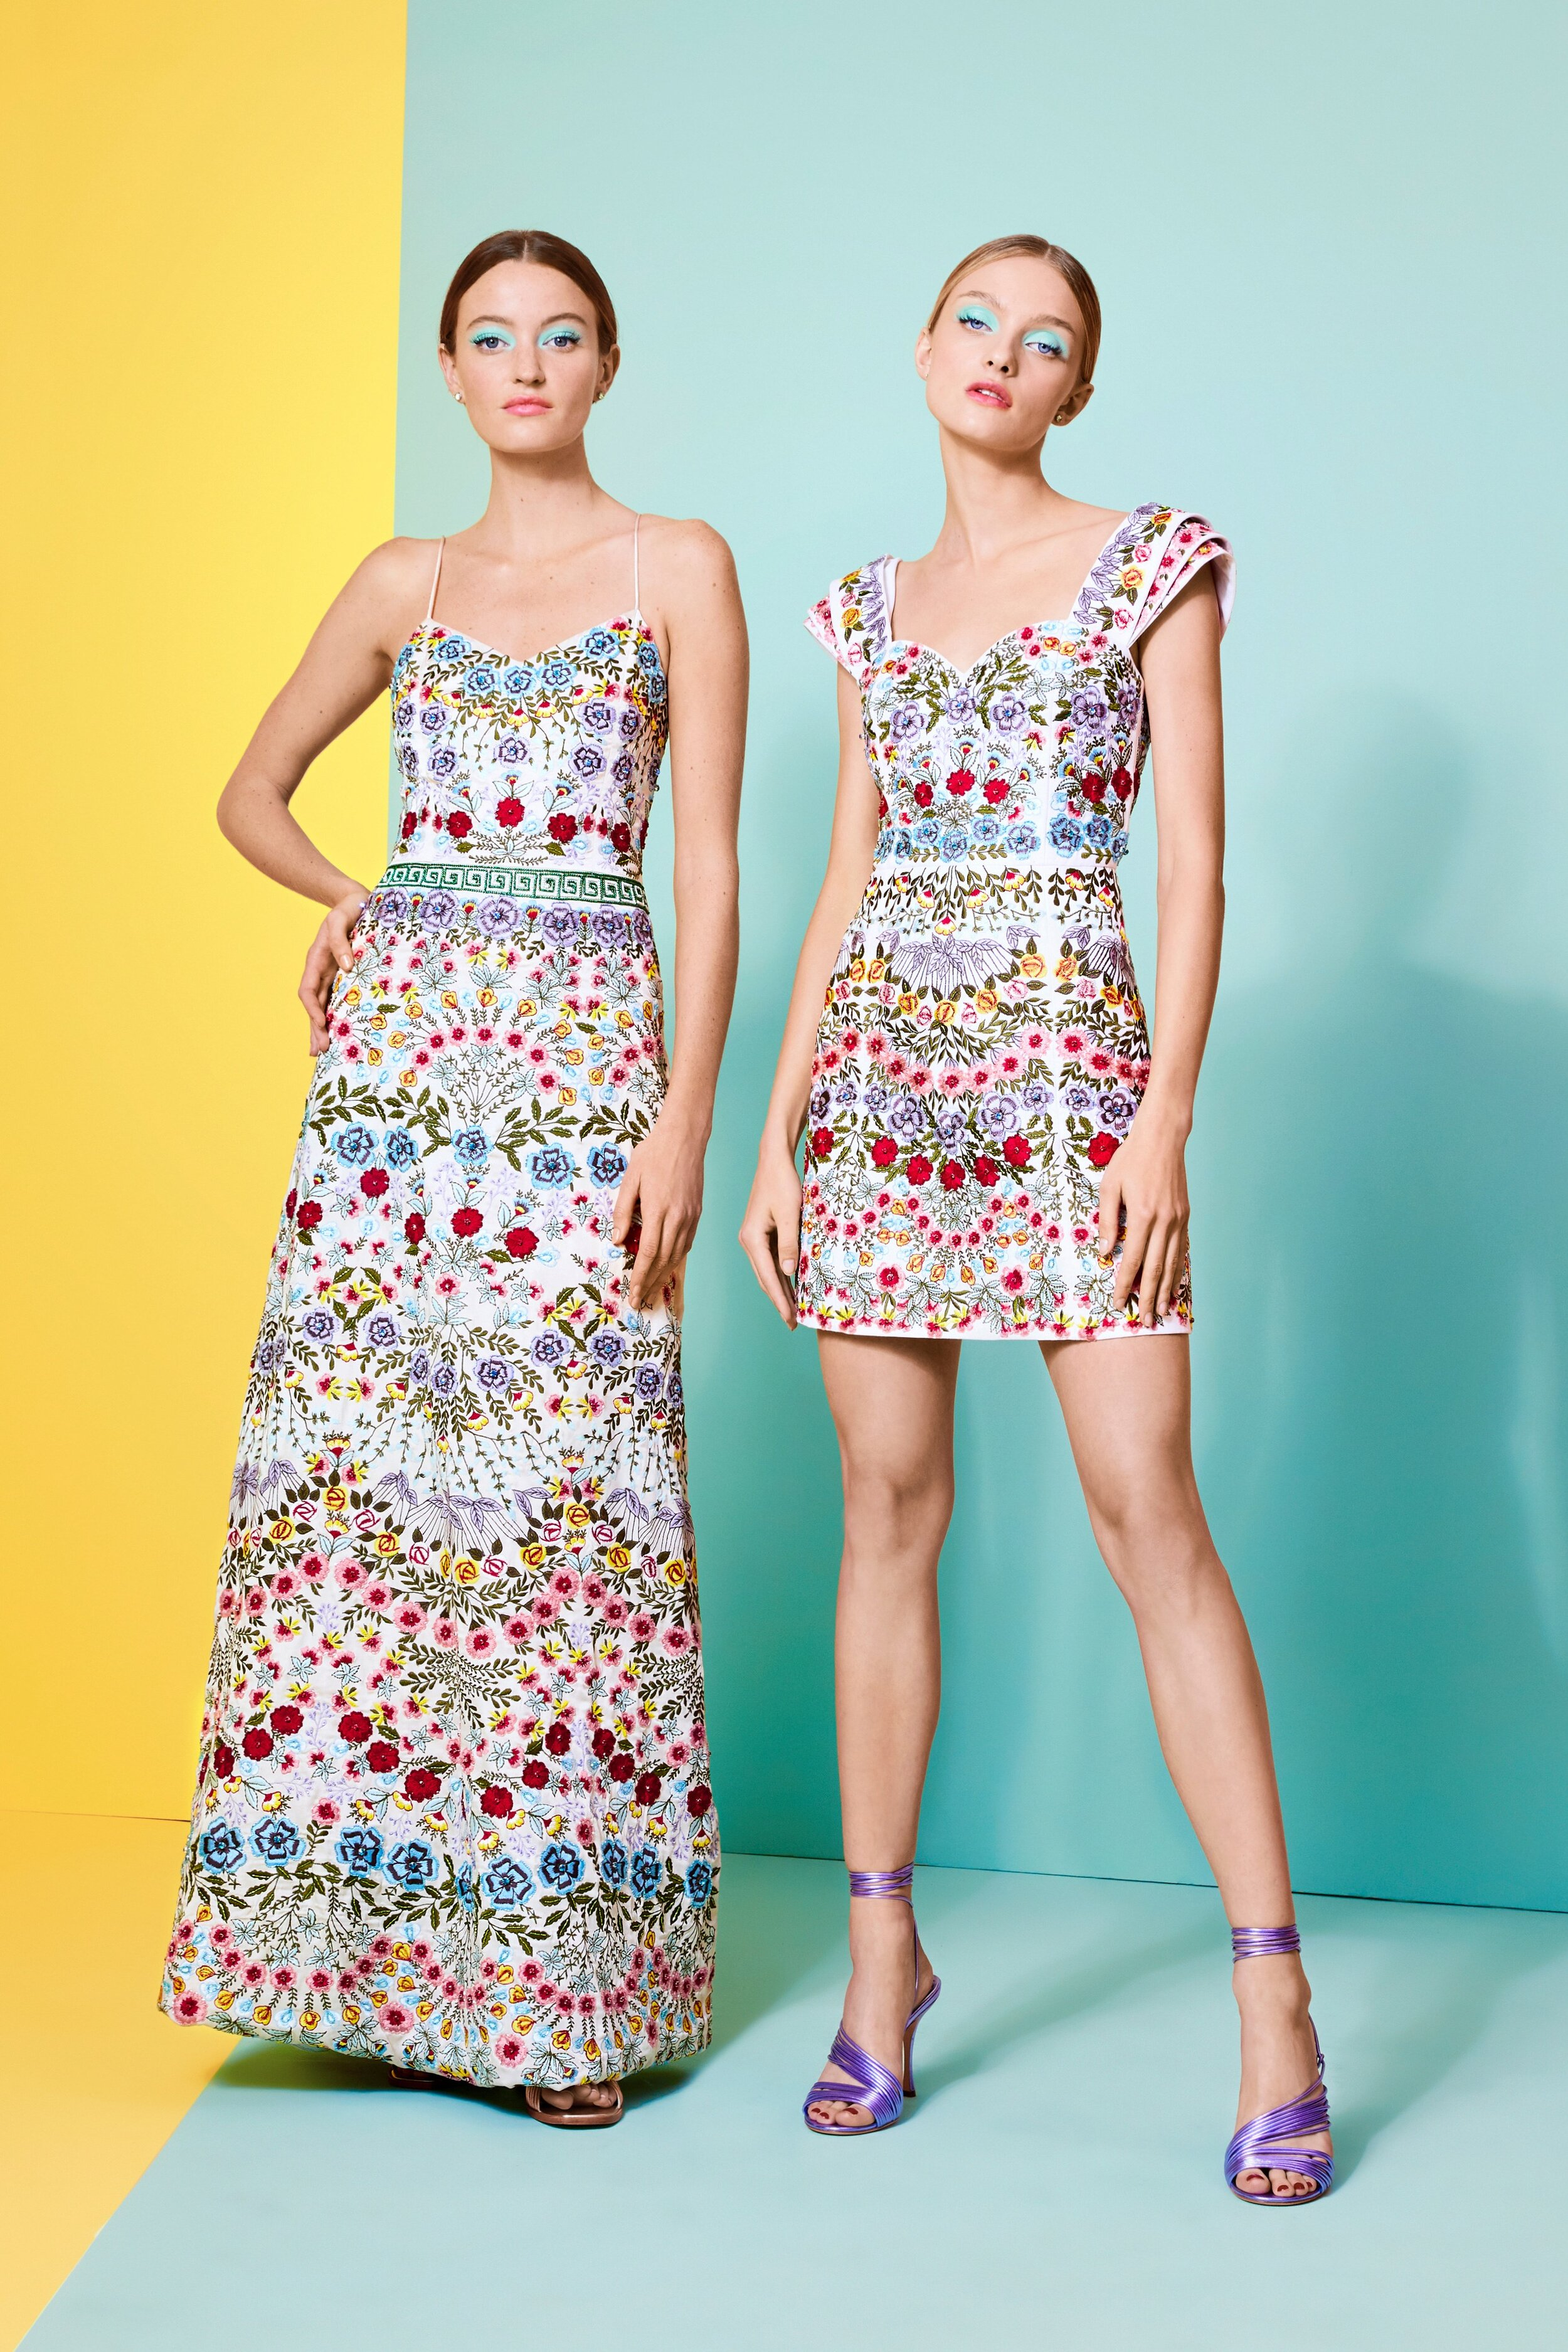 00021-ALICE-AND-OLIVIA-SPRING20-READY-TO-WEAR-credit-Stacey-Bendet.jpg